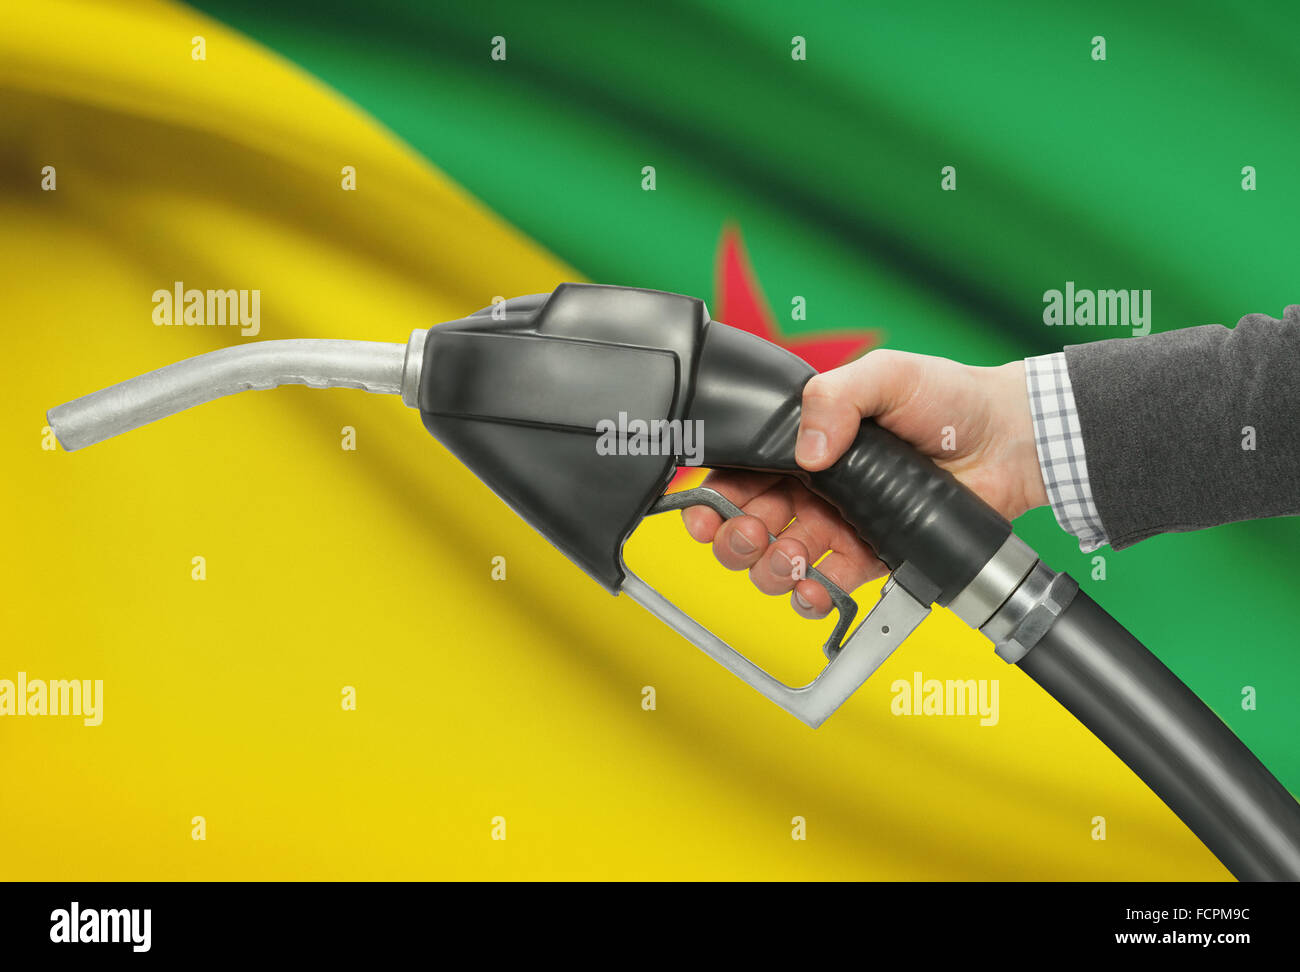 Fuel hand in nozzle flag on French Guiana pump with background qUzMSVp